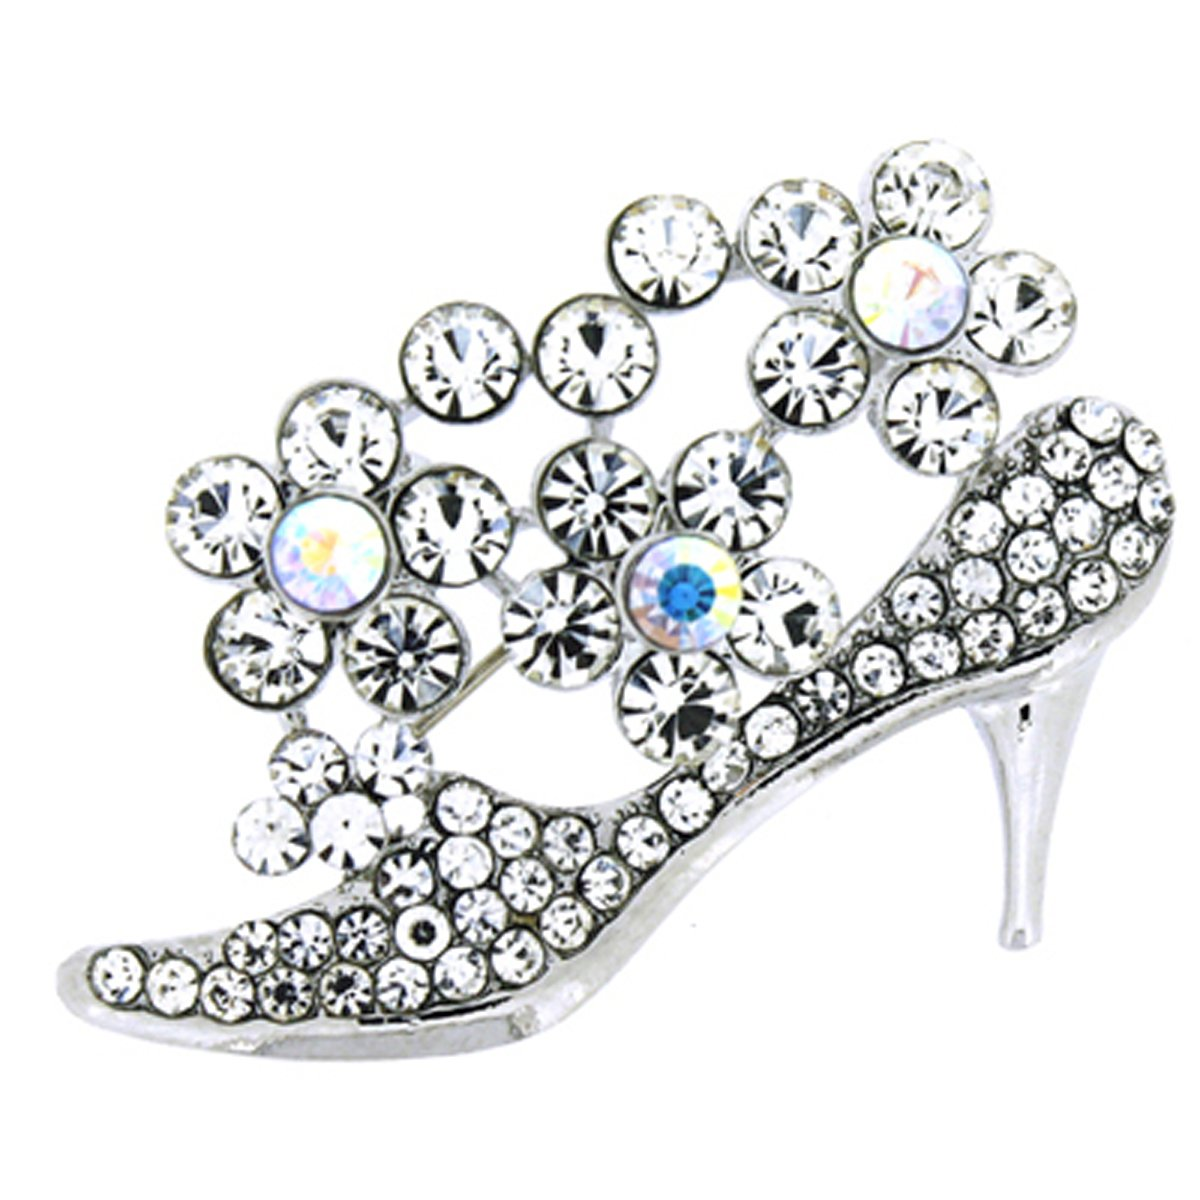 1055dd3fdc2 Brooches Store Silver   AB Swarovski Crystal Stiletto High Heel Shoe with  Flower  Brooches Store  Amazon.co.uk  Jewellery